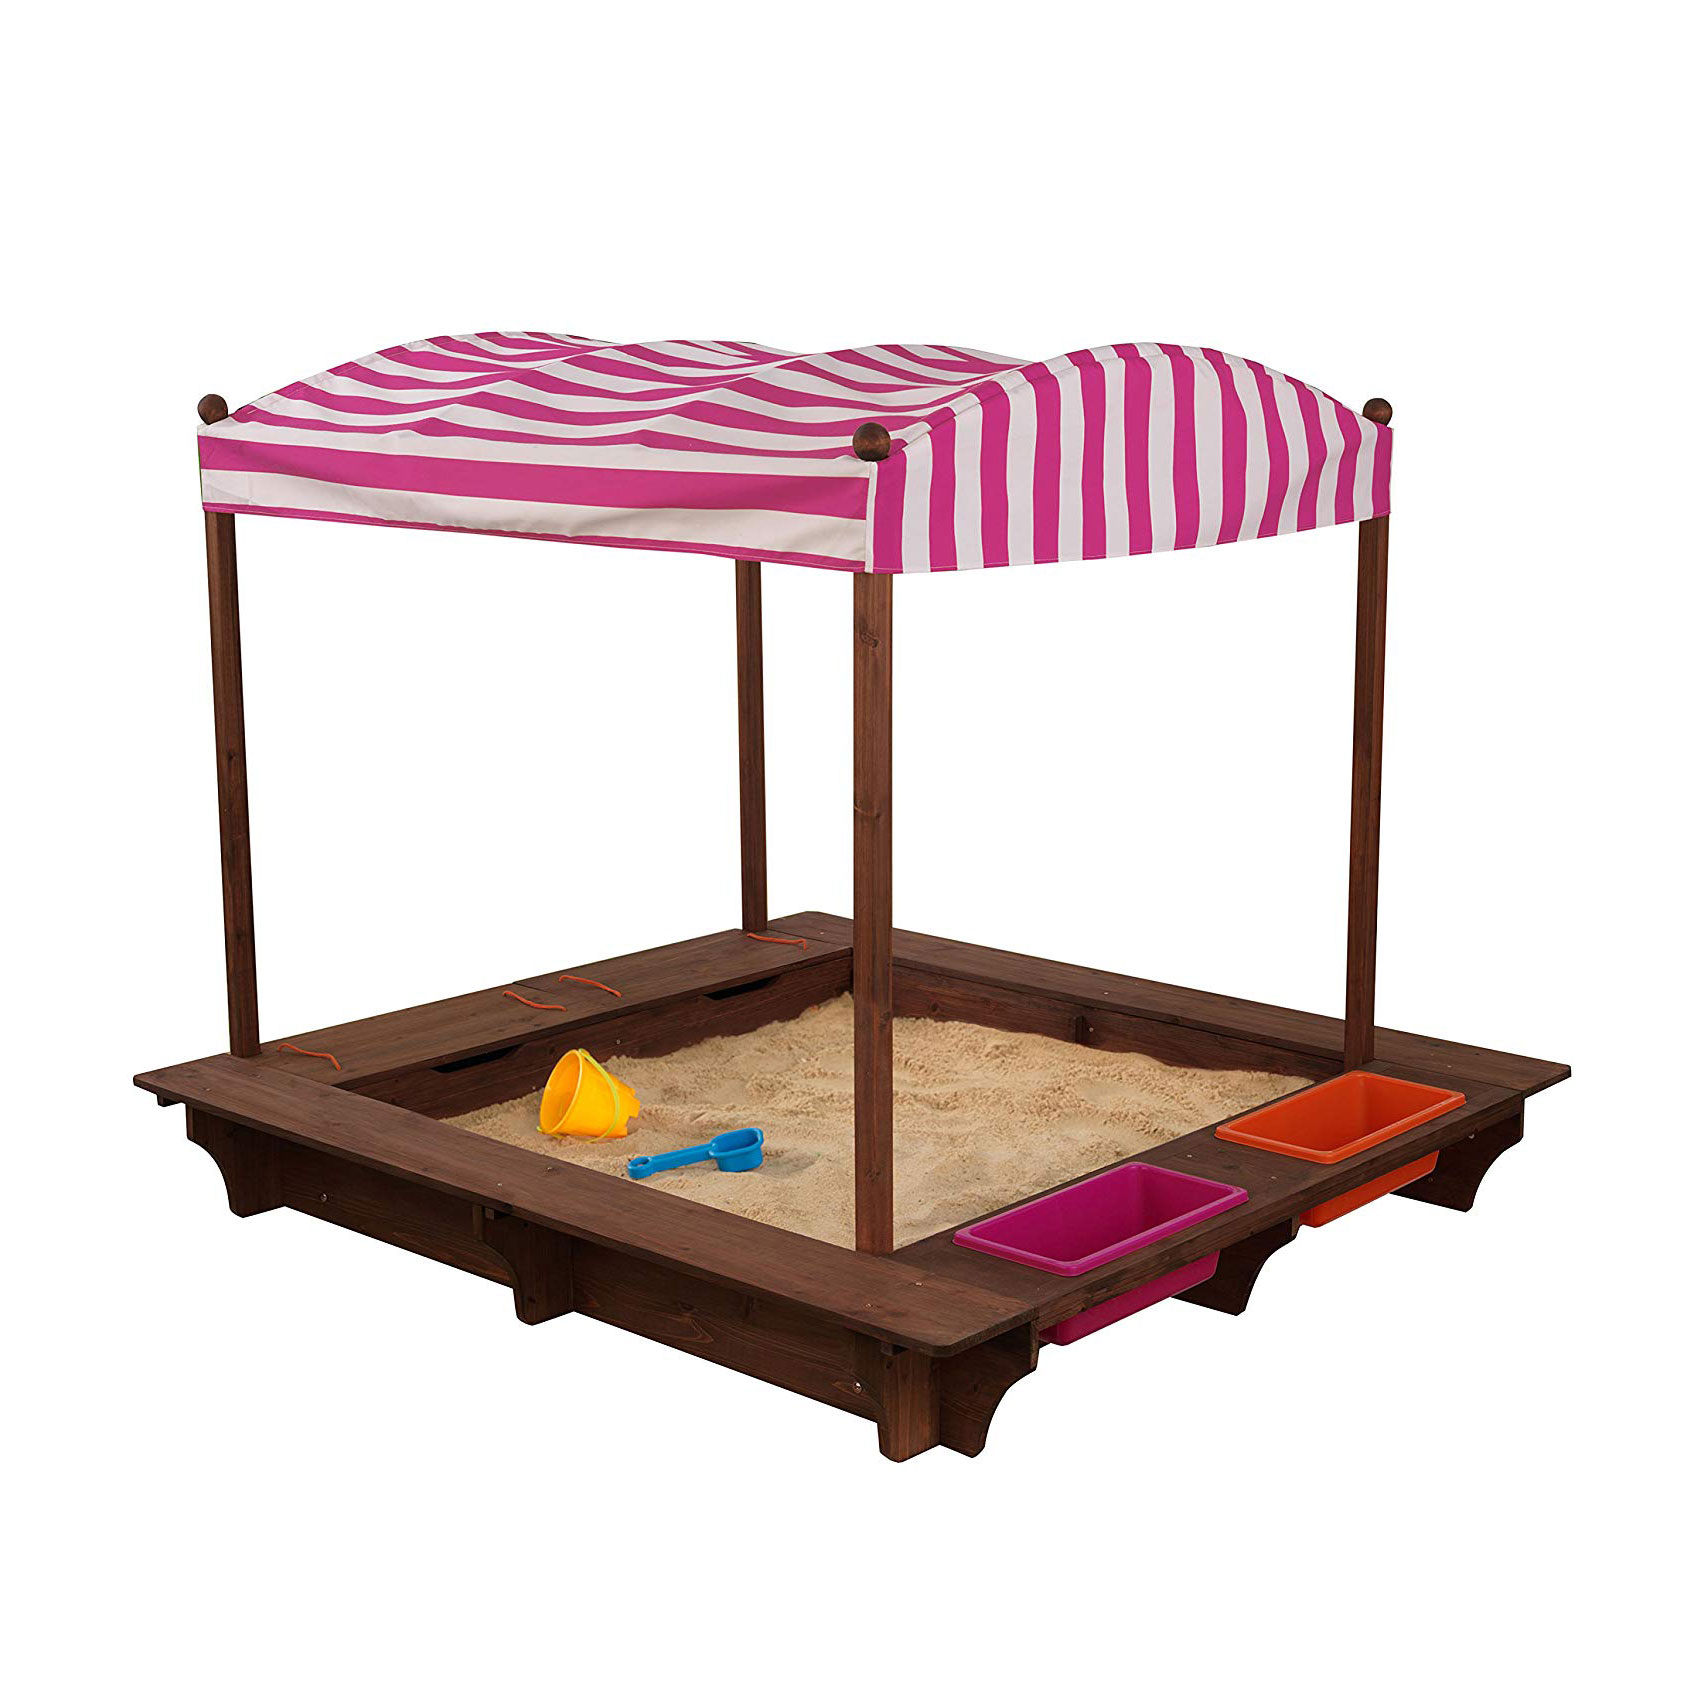 KidKraft Outdoor Play Cabana Kids Sandbox with Striped ...